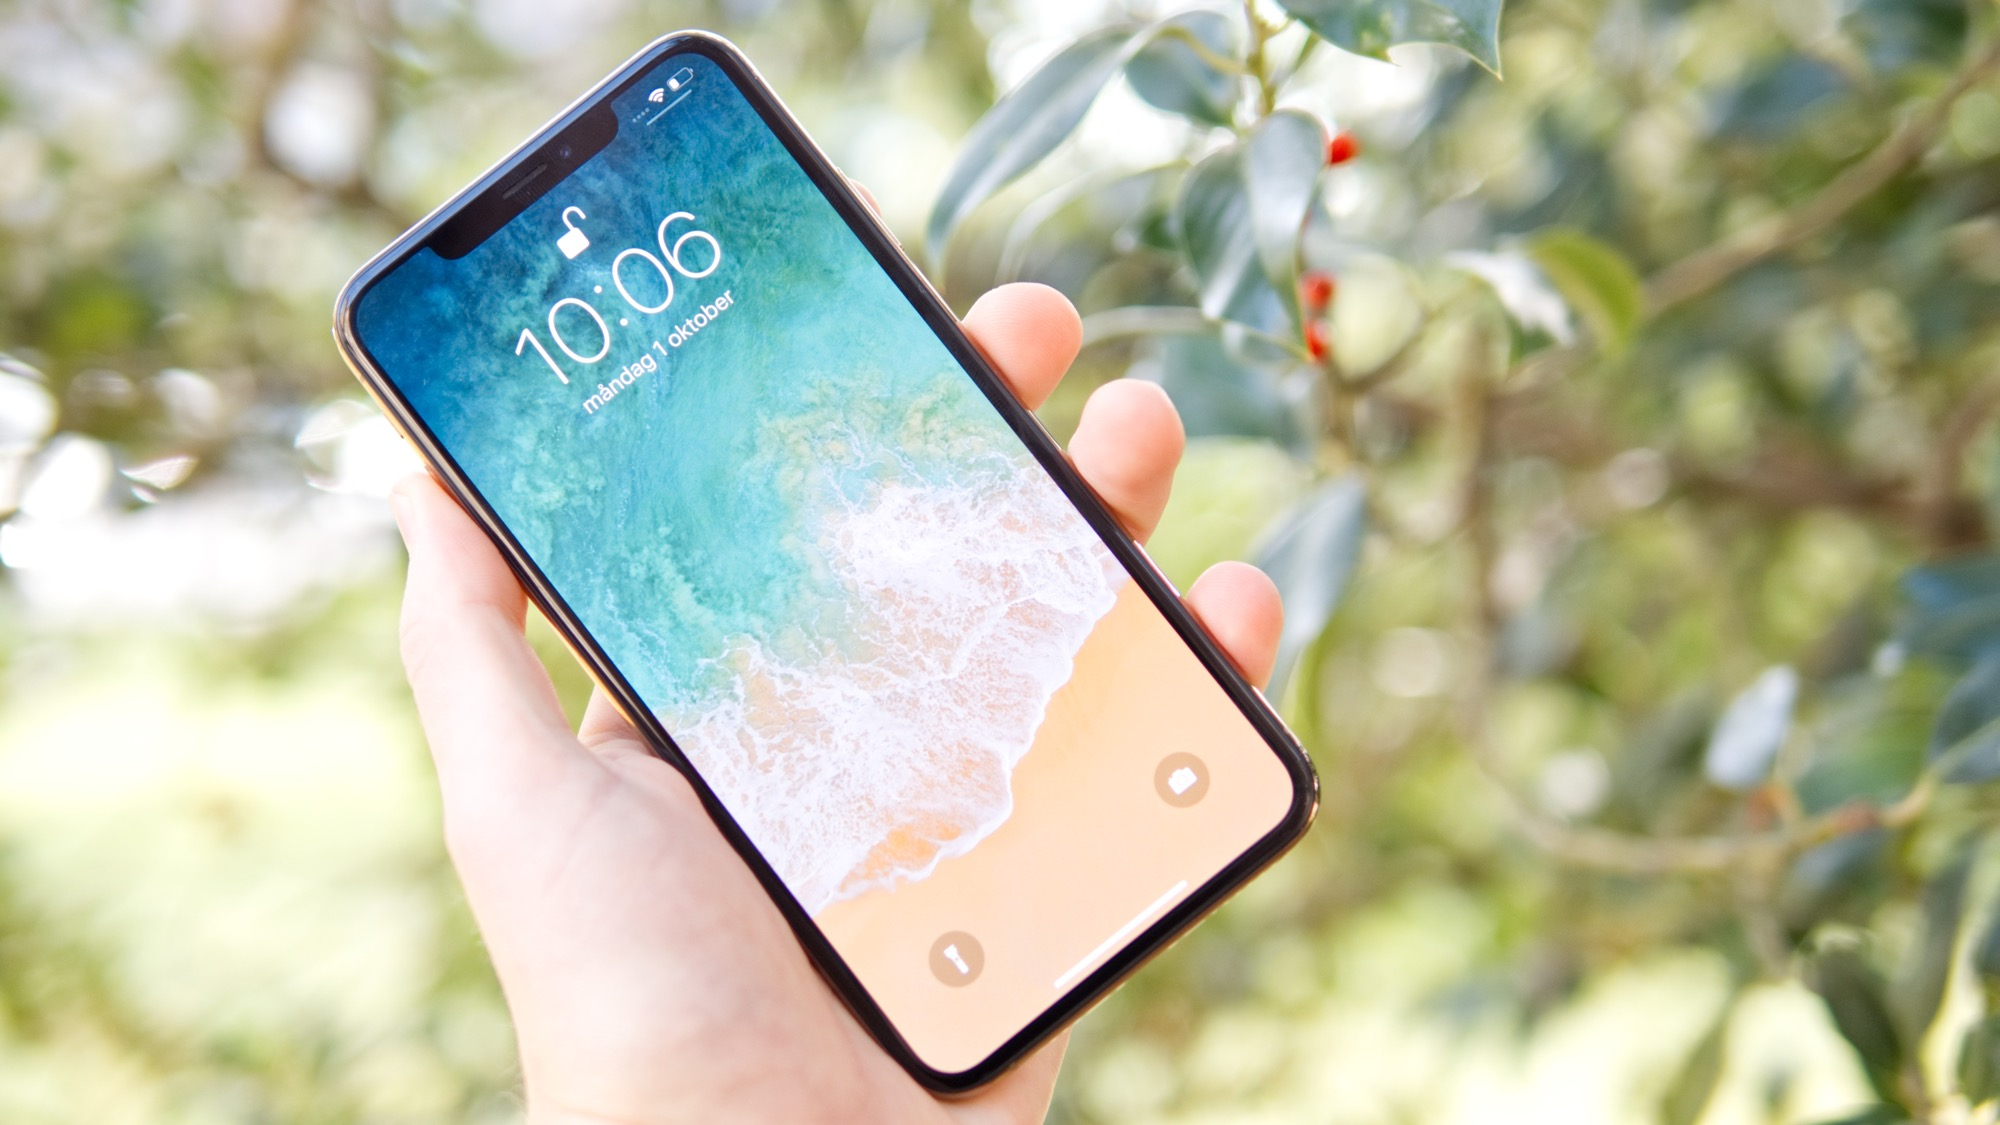 Recension av iPhone XS Max